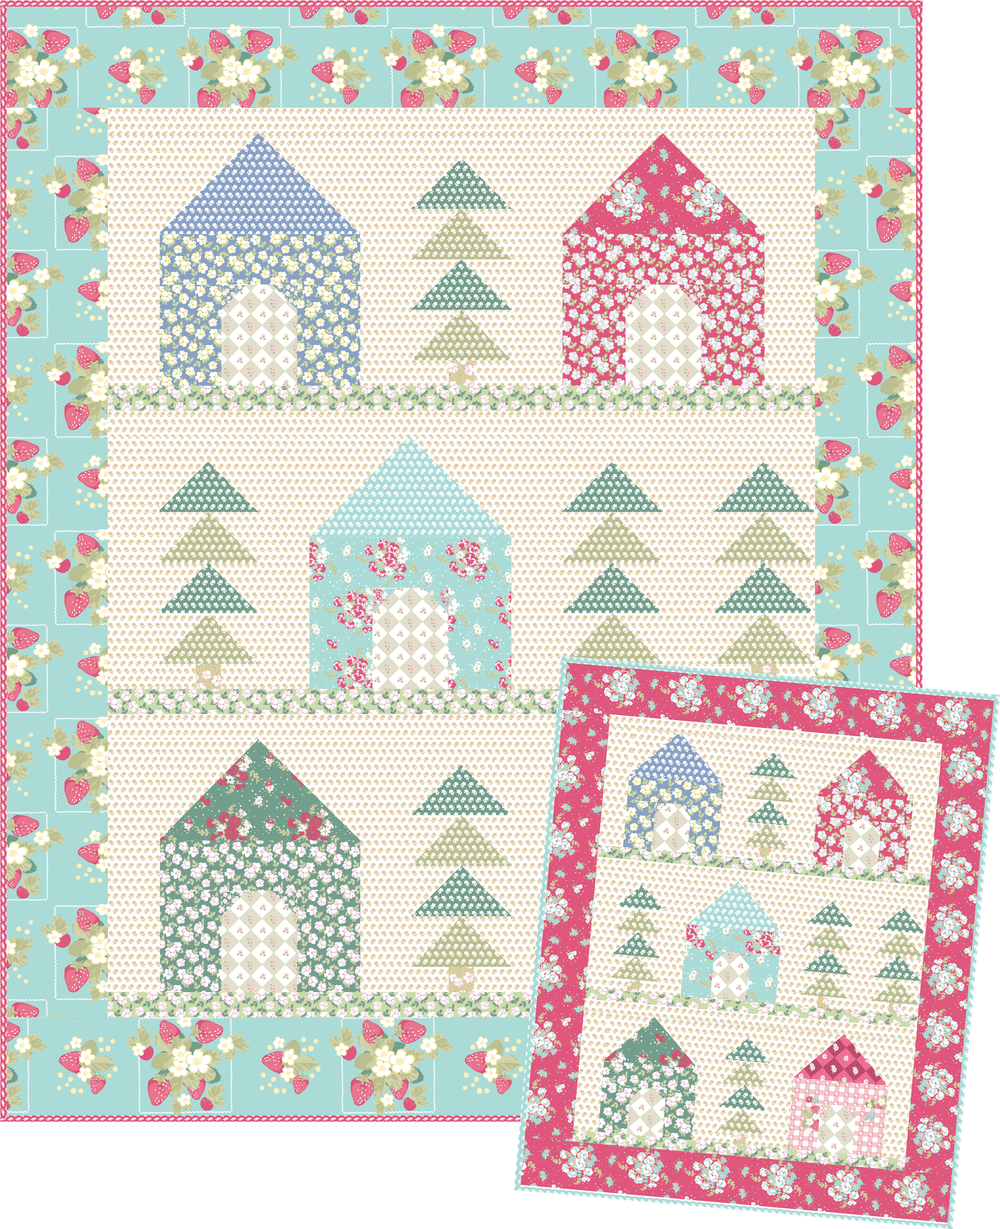 Cozy Cabins Quilt and Mini Quilt by Jera Brandvig for Lecien Fabrics